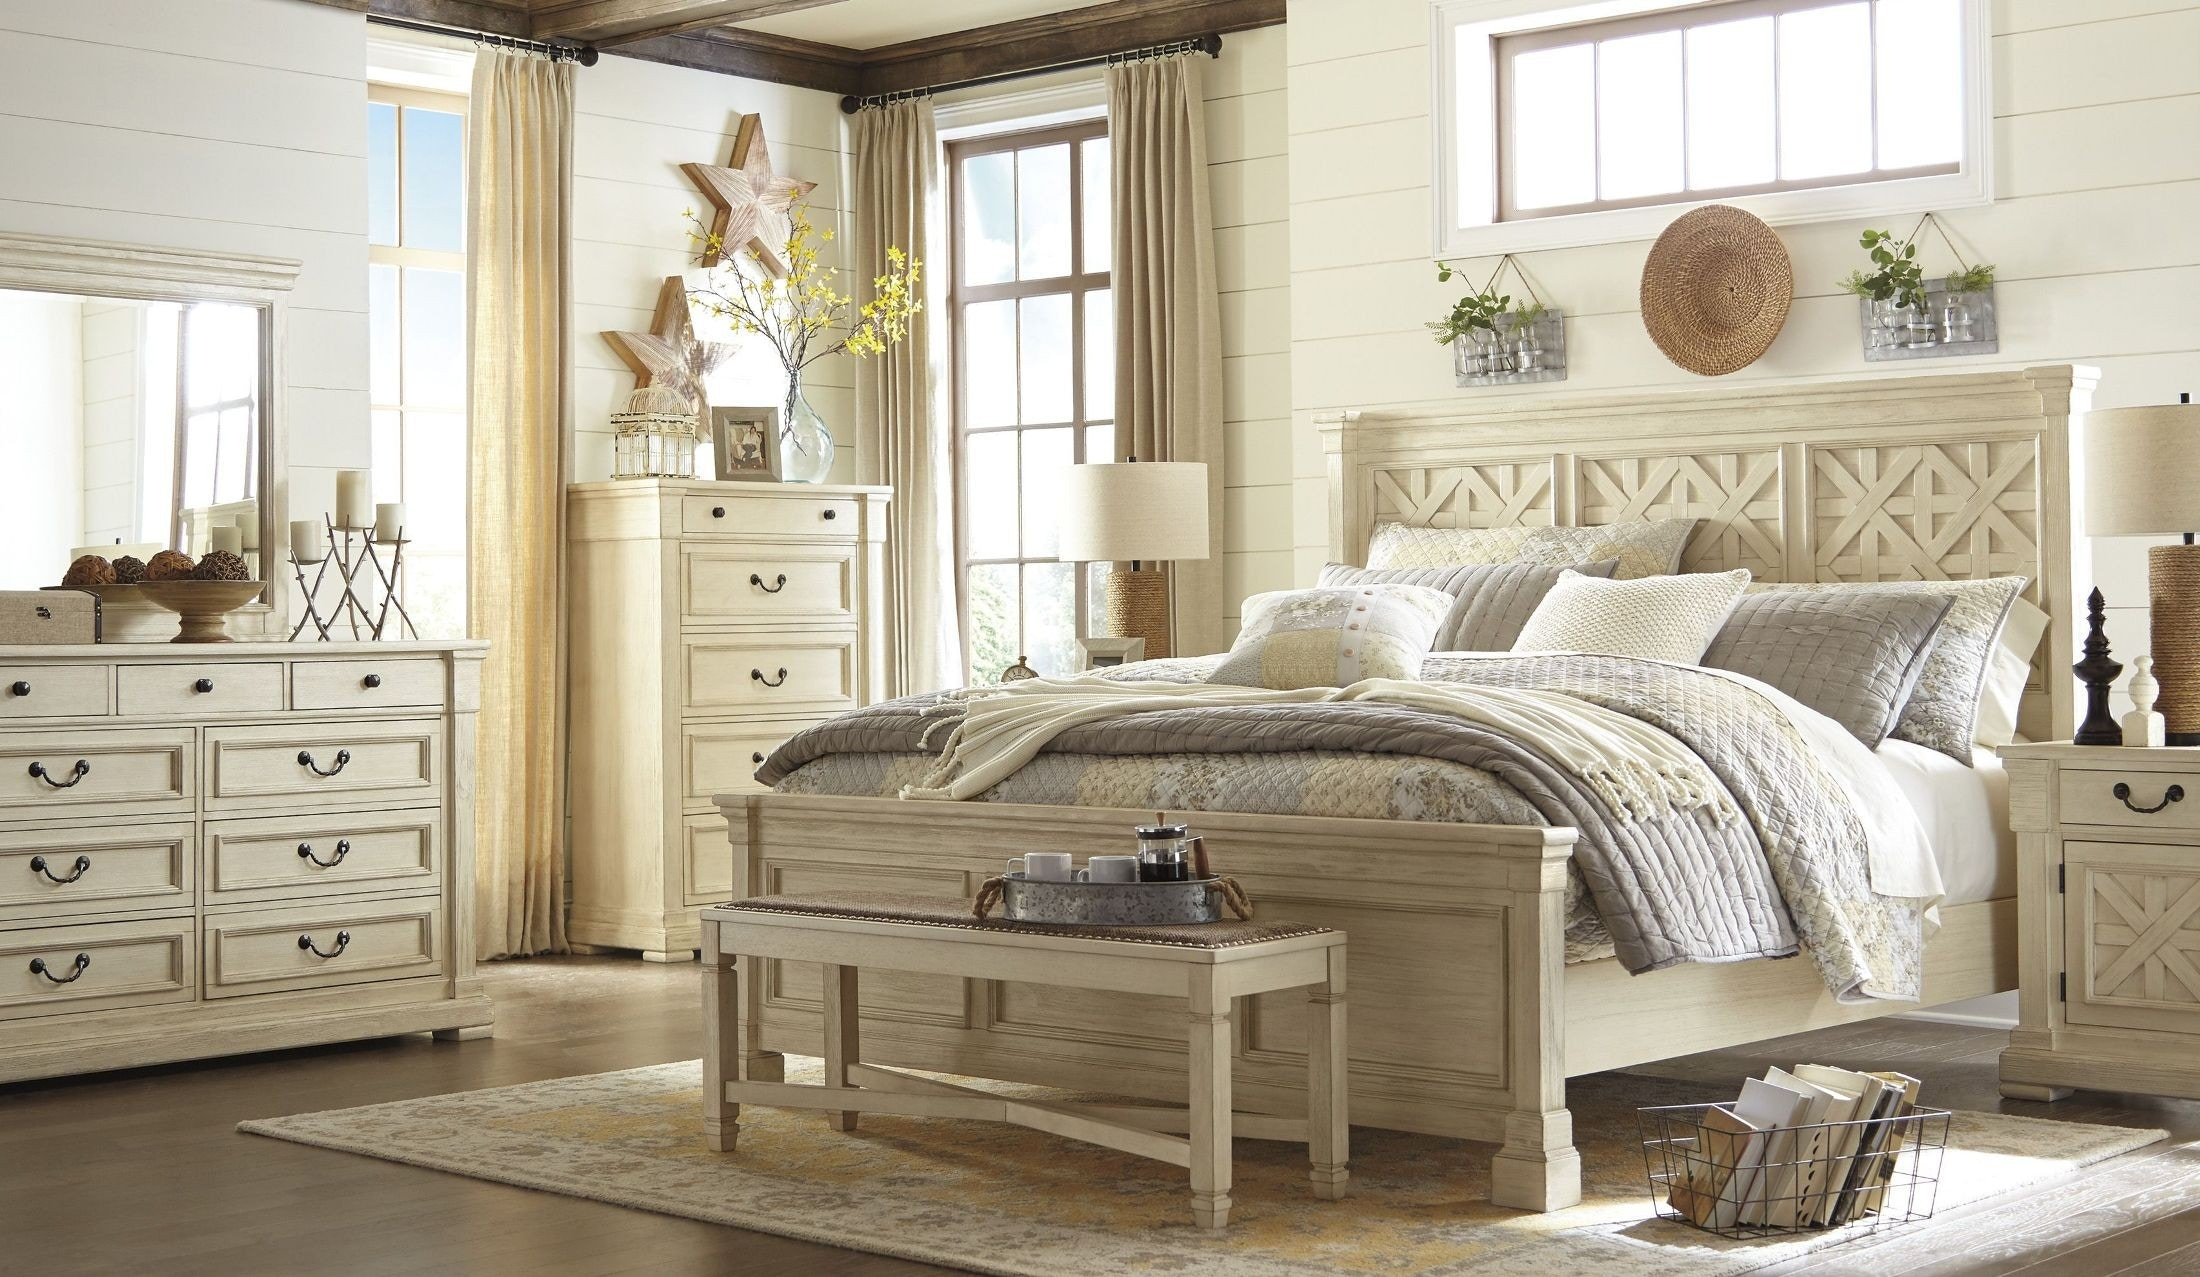 Ashley Bedroom Set Signature Collection B647 B647 BS